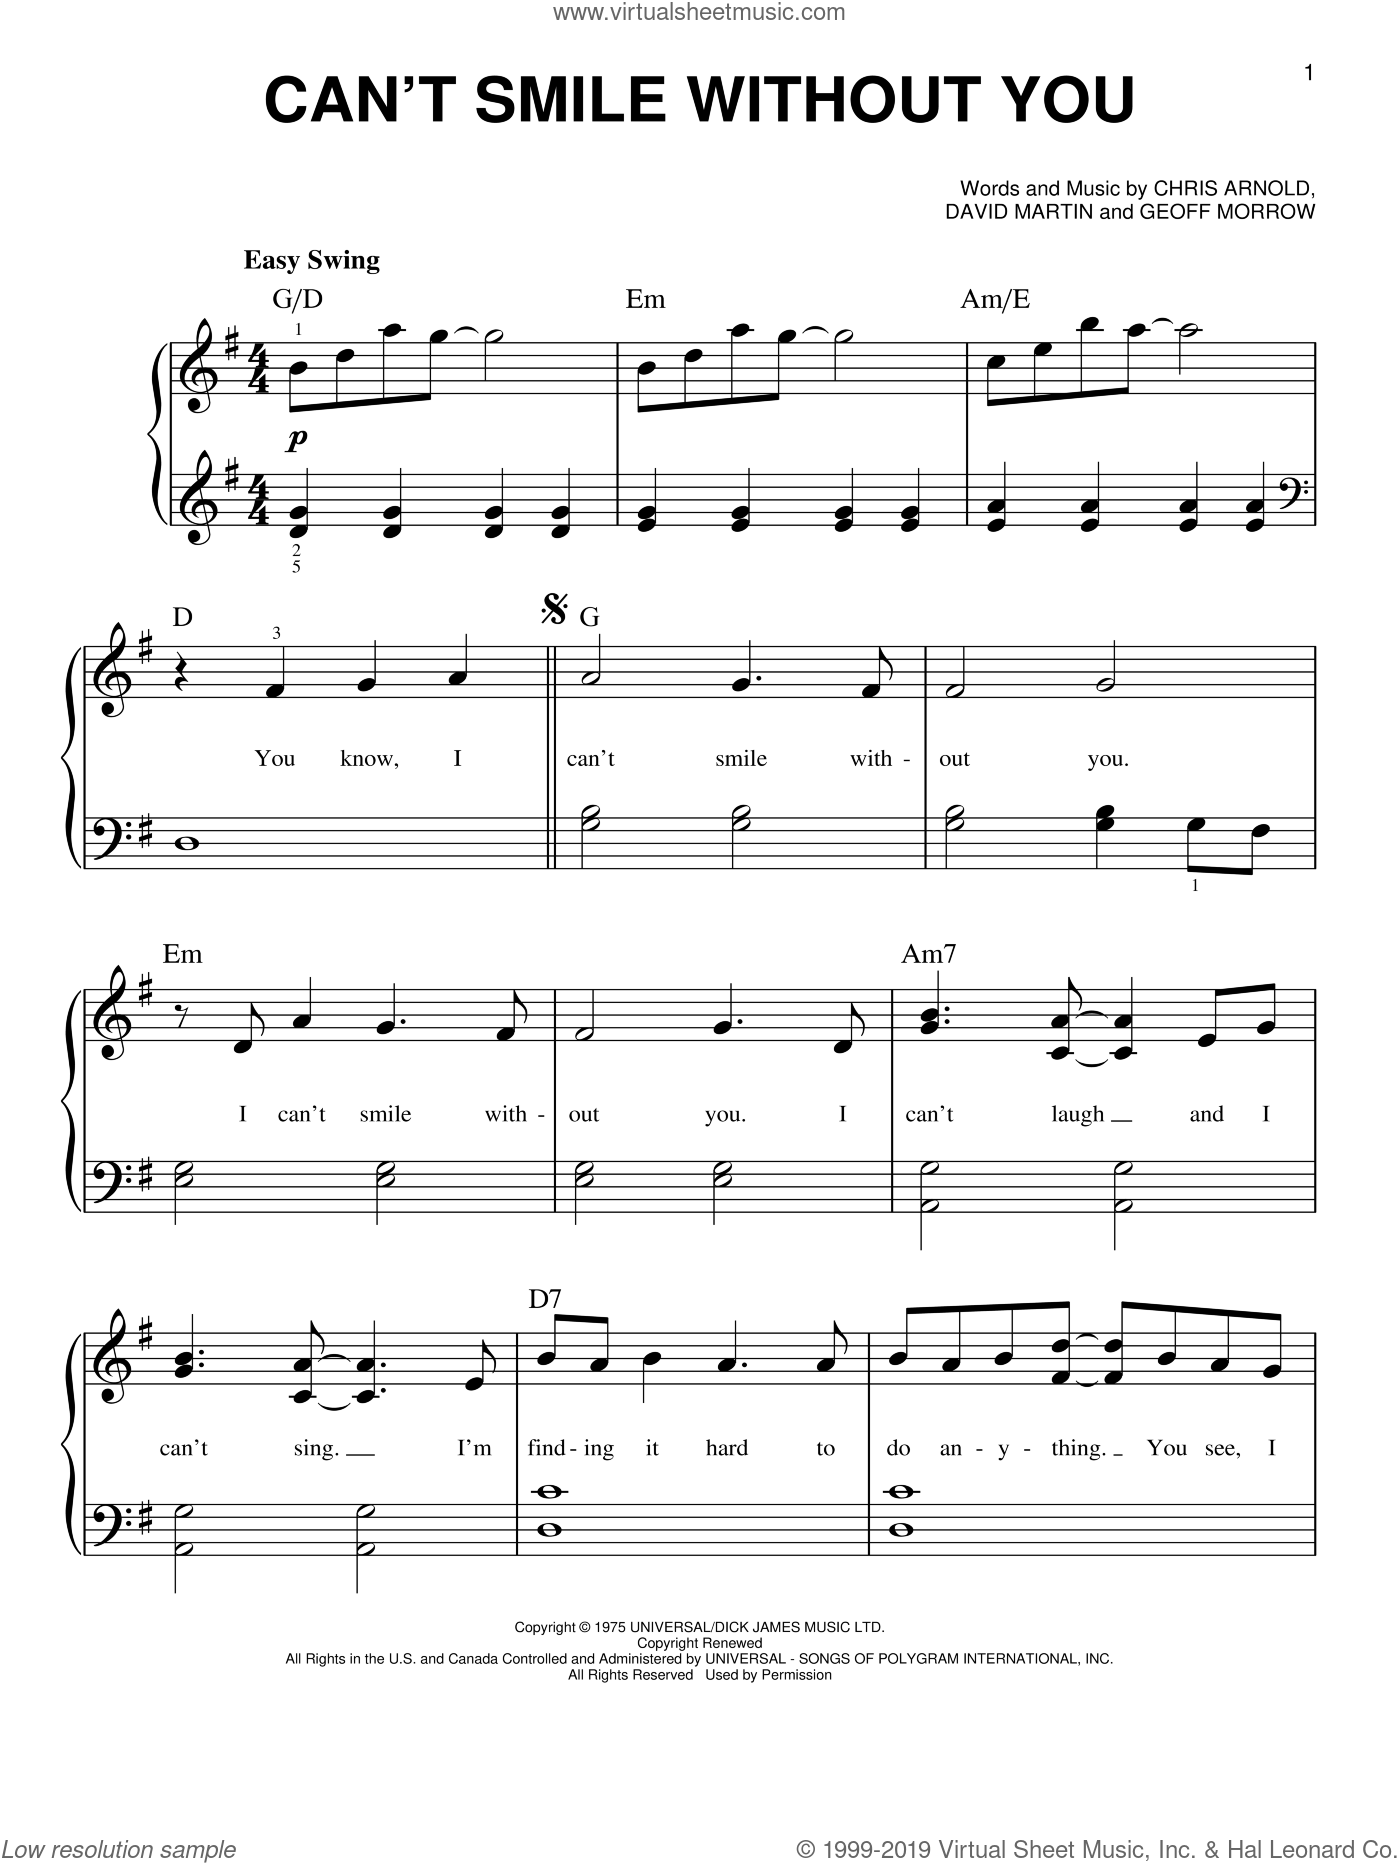 Can't Smile Without You sheet music for piano solo (chords) by Geoff Morrow